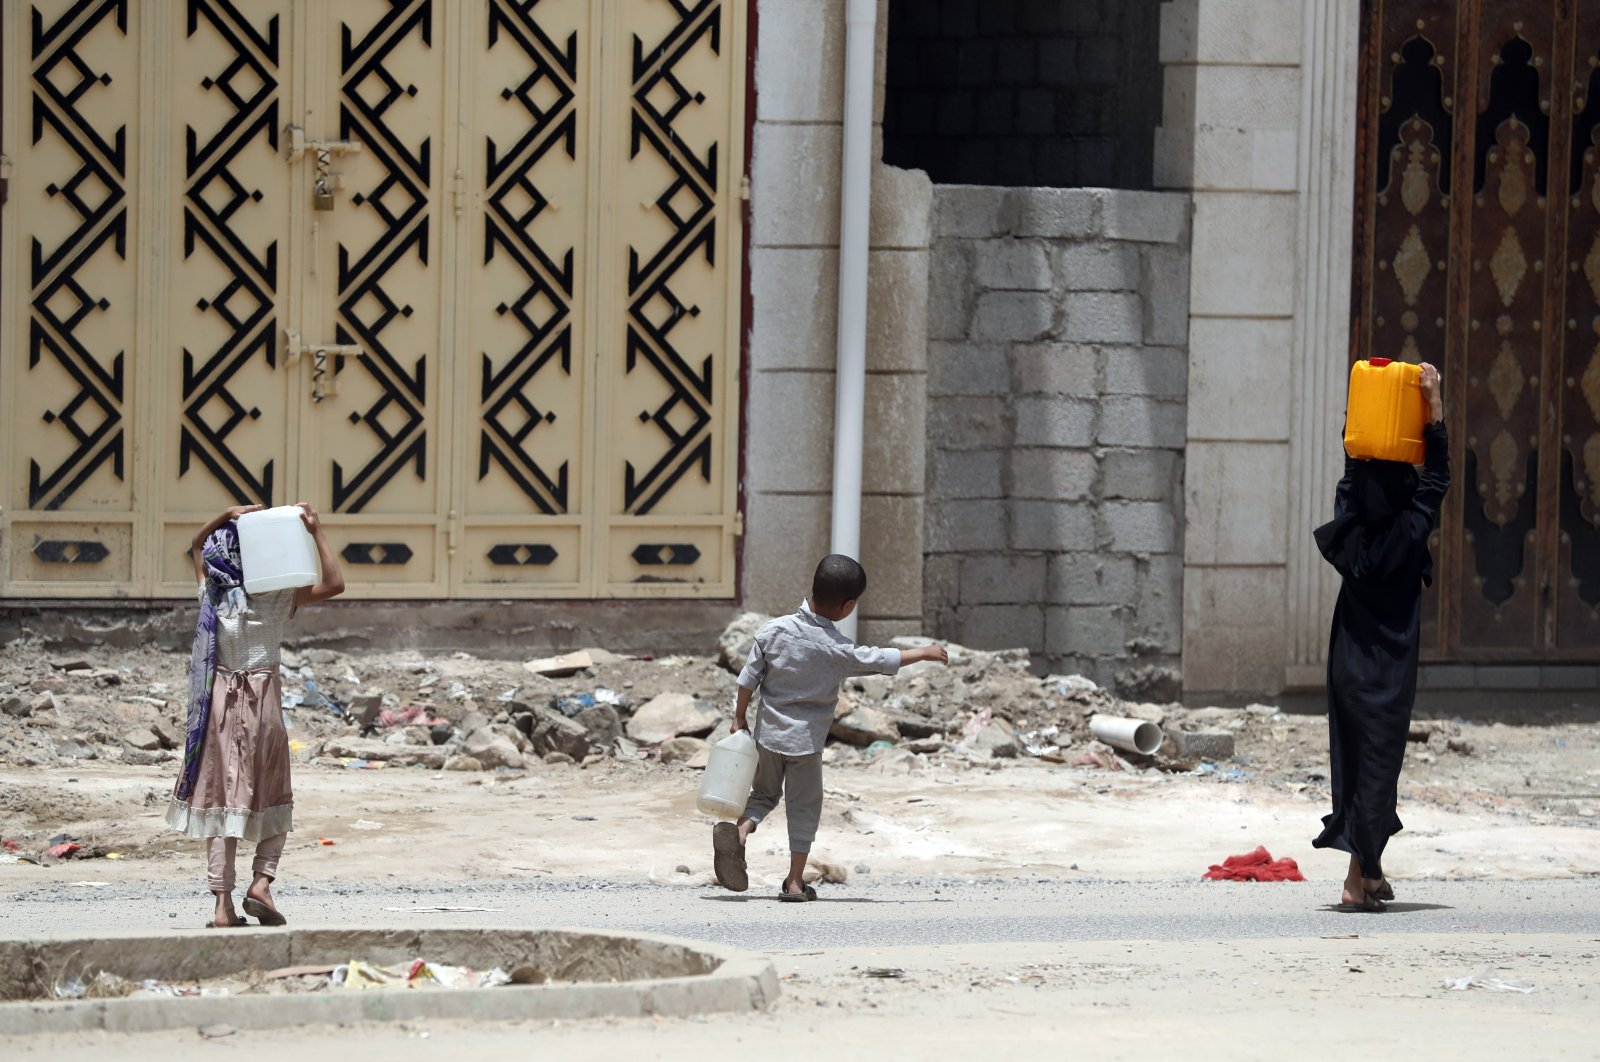 Yemeni children carry water-full bottles after filling them from a charity tap amid concerns over the spread of the coronavirus COVID-19, in Sanaa, Yemen, April 5, 2020. (EPA Photo)